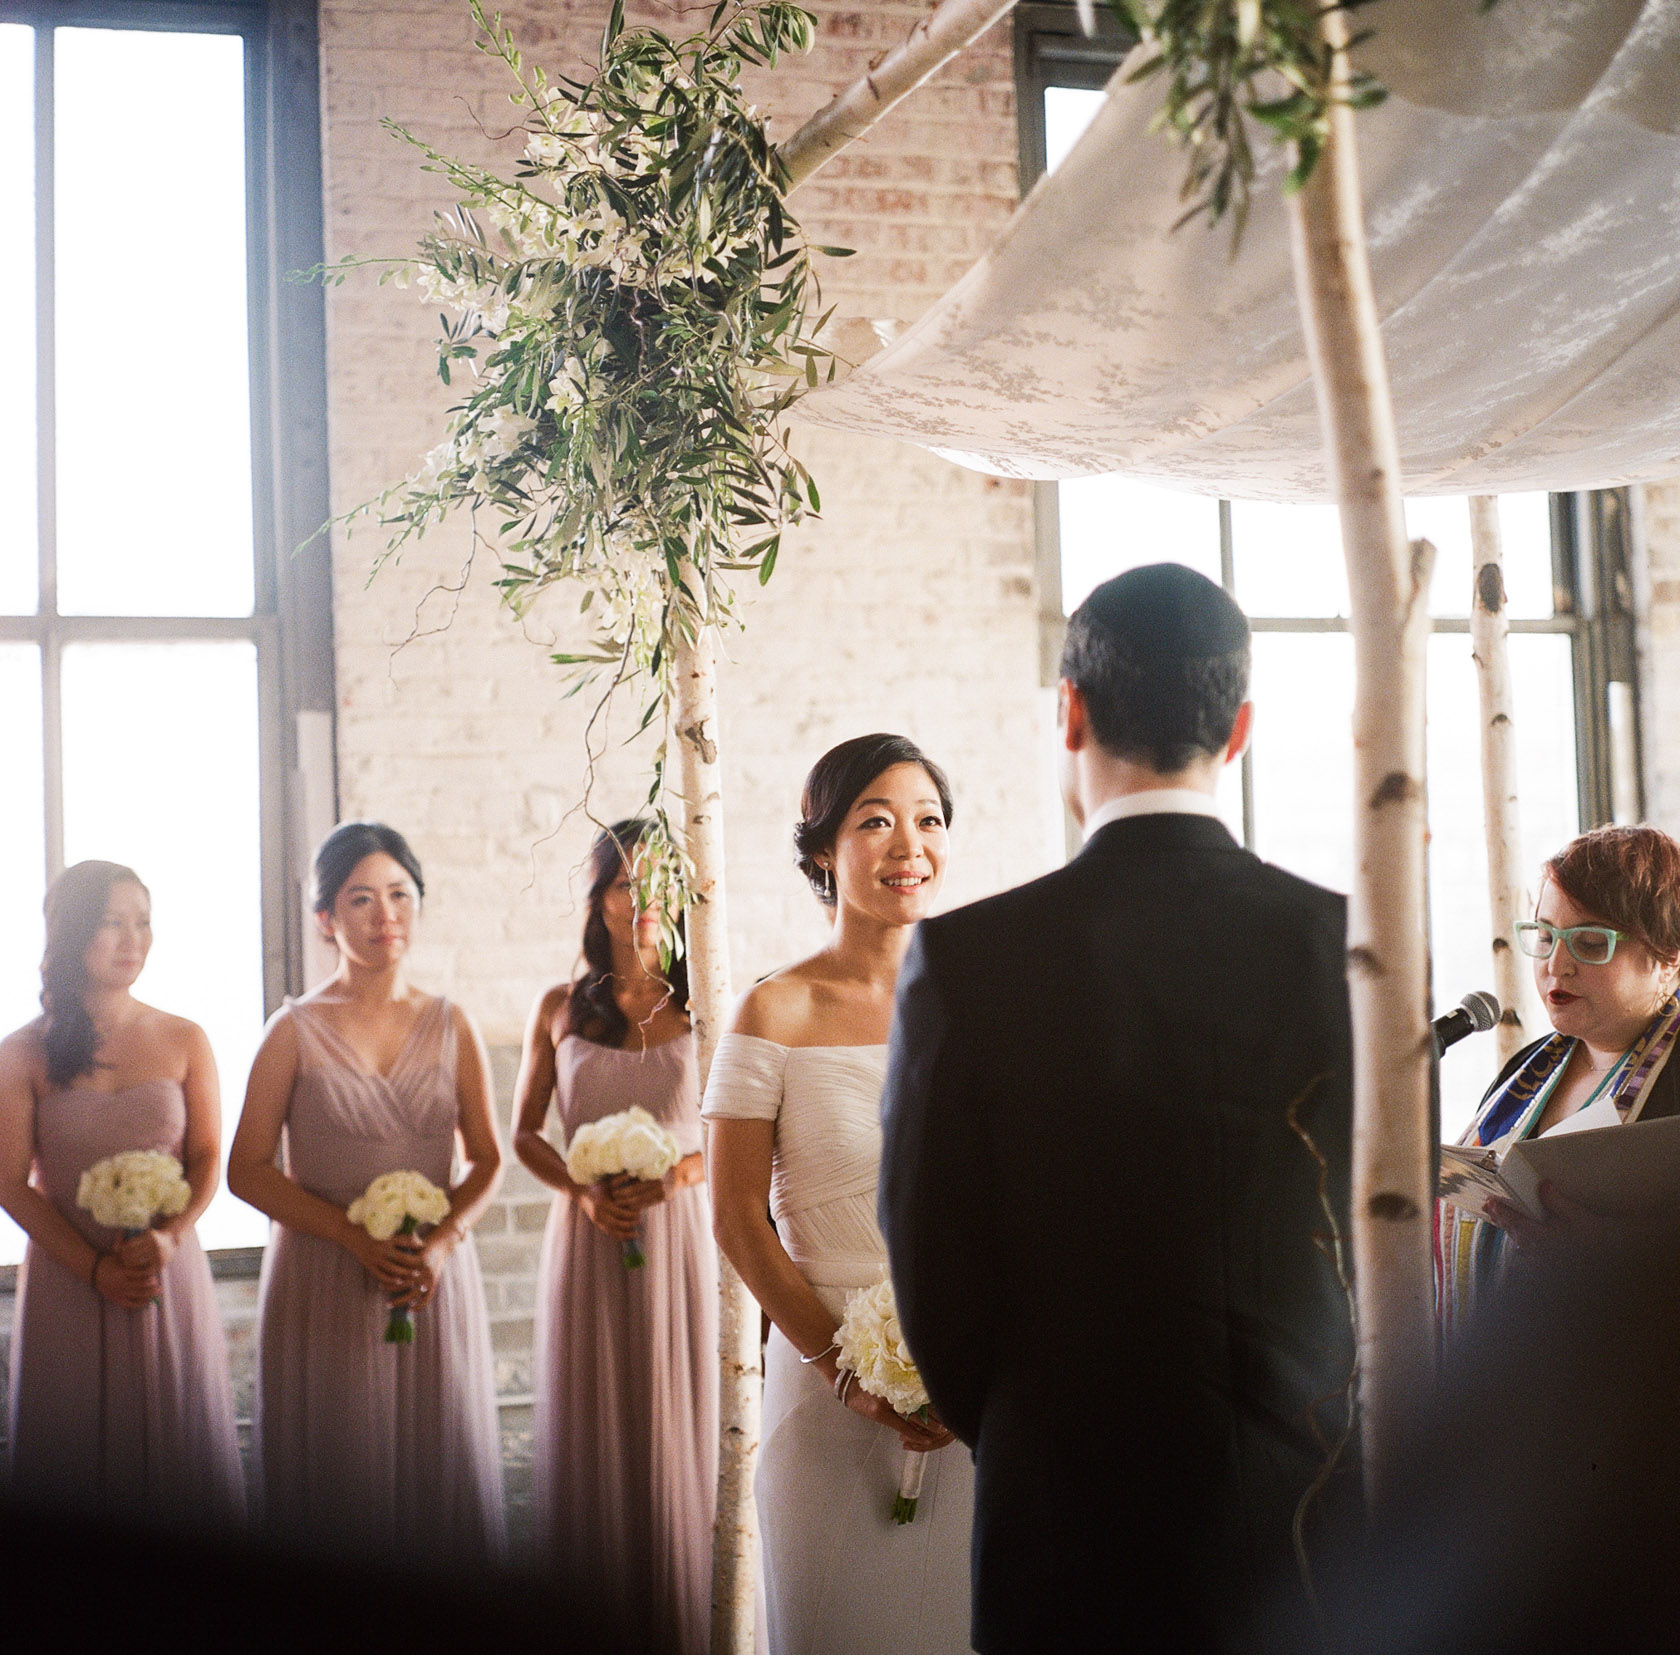 new orleans wedding ceremony on film at cac - 04